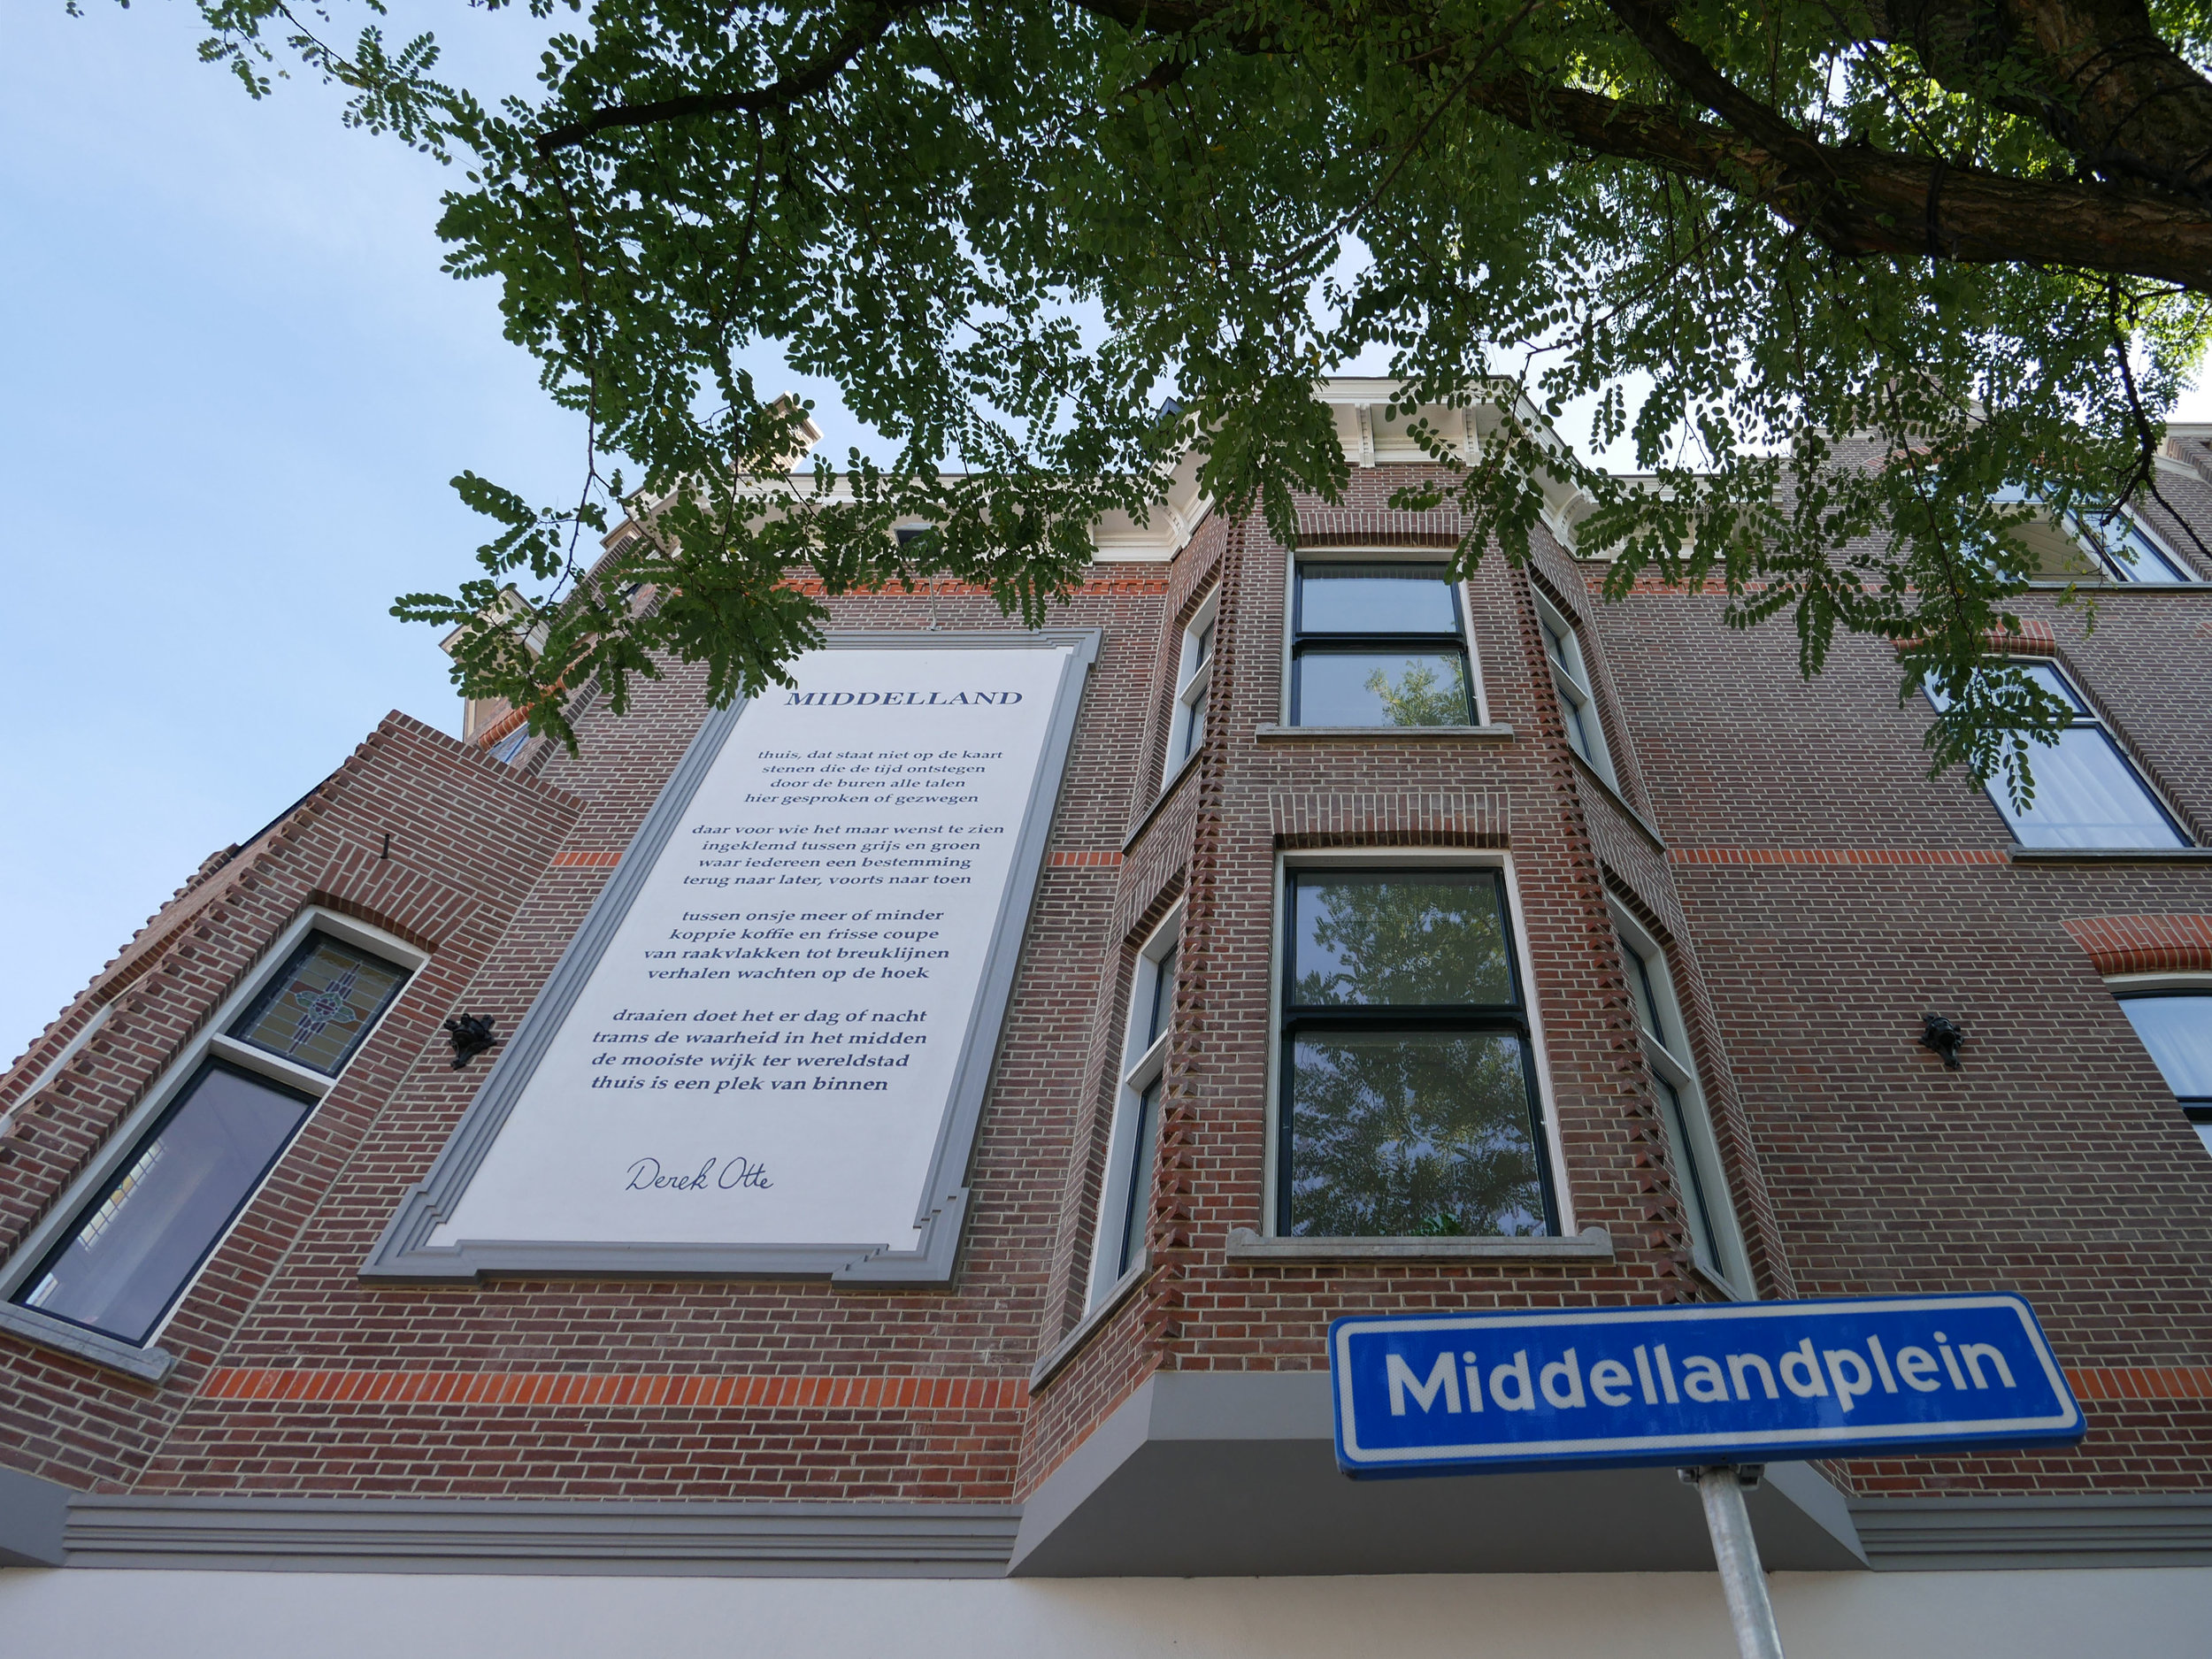 looking up to the restored brickwork facade with the classical advertisement frame ànd a poem by Derek Otte